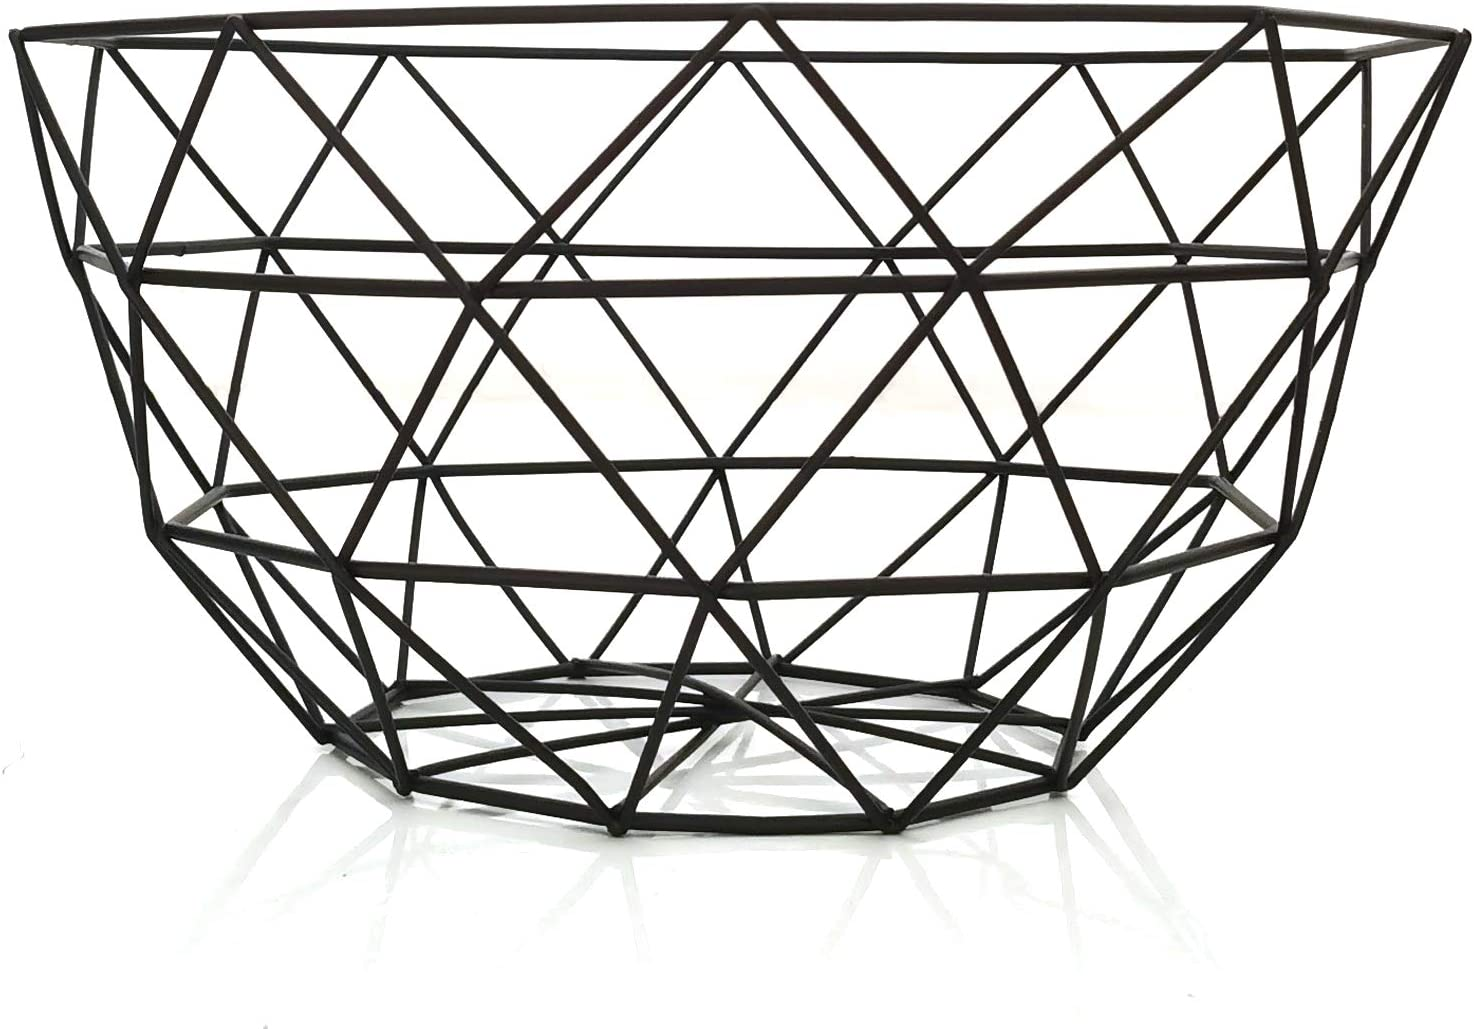 Teetookea Metal Wire Fruit Basket, Creative Mesh Fruit Bowl, Round Metal Storage Holder, Modern Style Container for Kitchen Counter, Table Centerpiece Decorative, Countertop, Home Decor (Large)